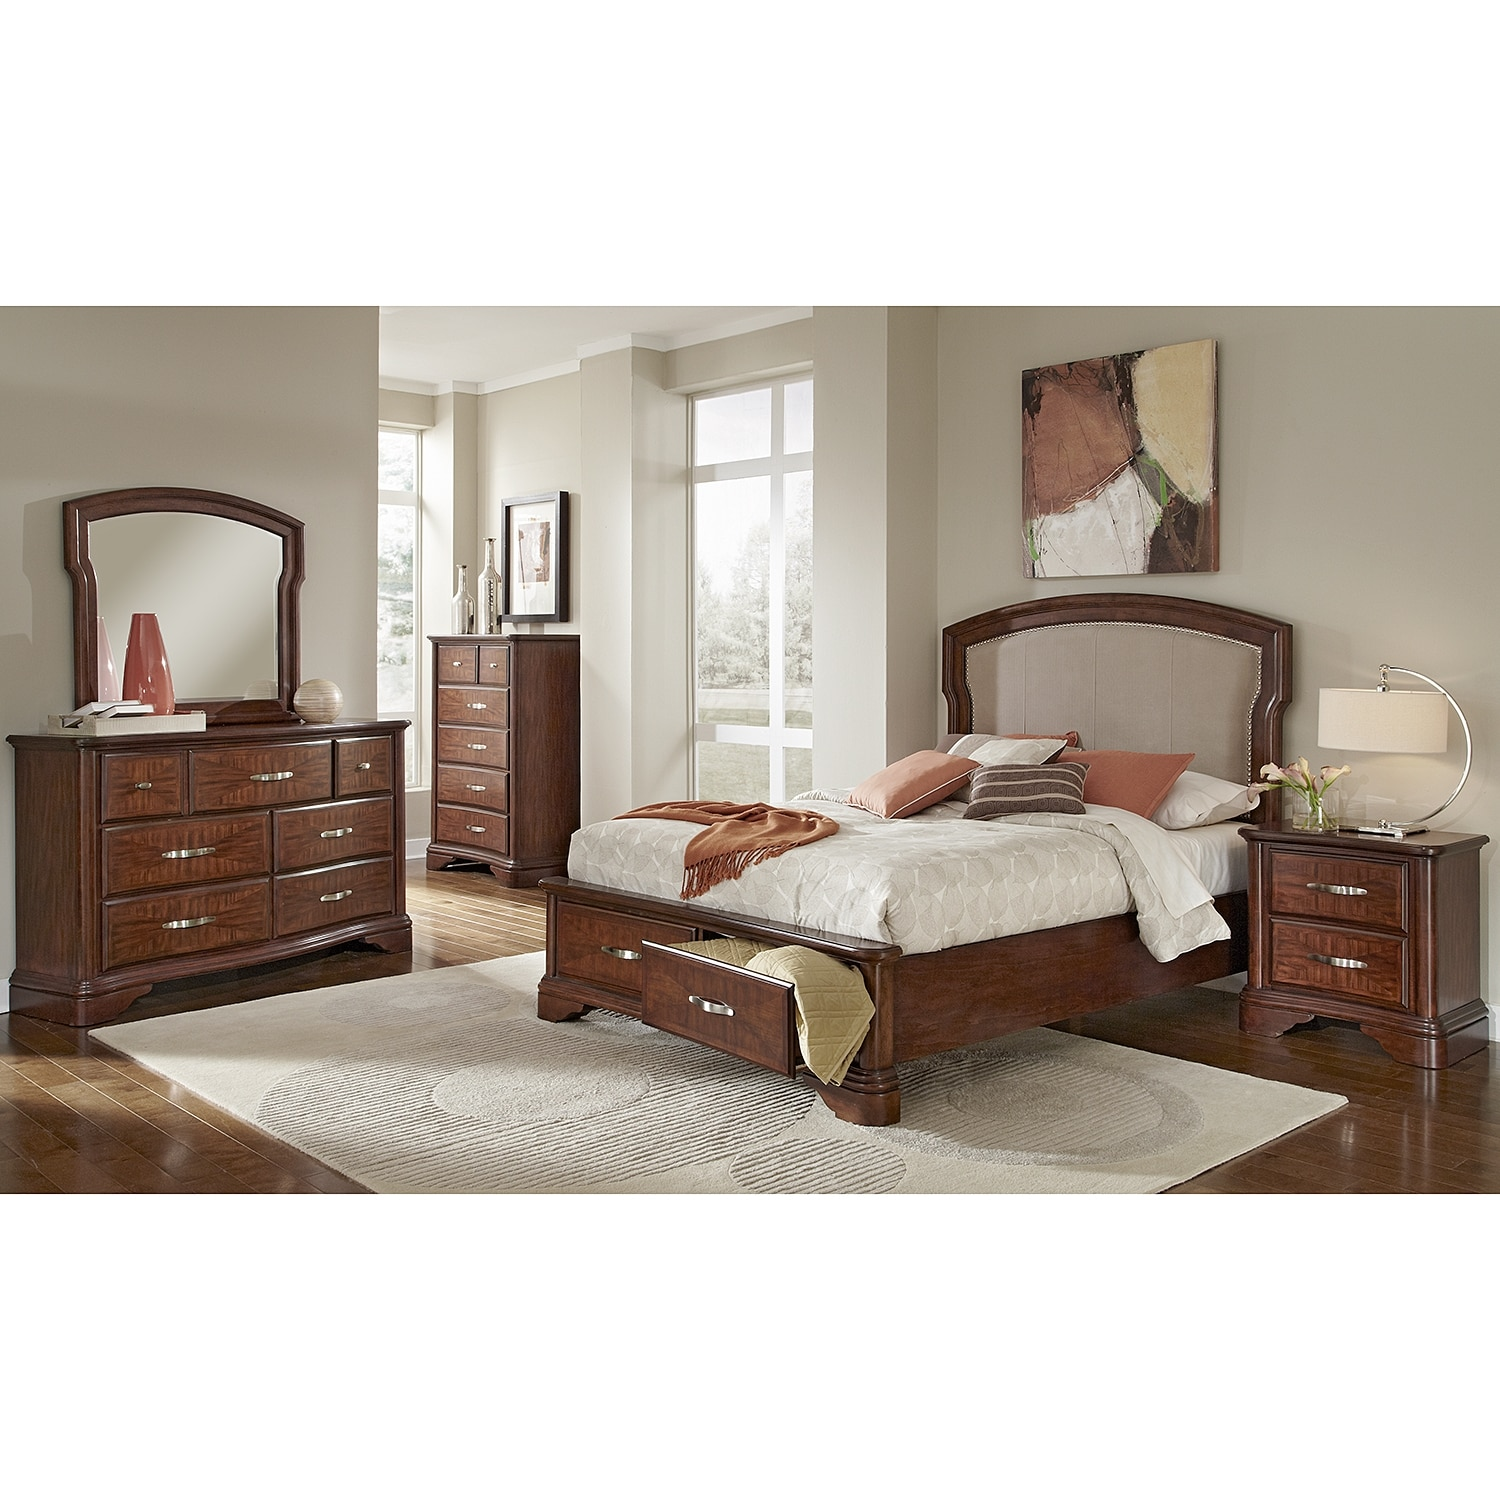 vanderbilt bedroom nightstand value city furniture. Black Bedroom Furniture Sets. Home Design Ideas